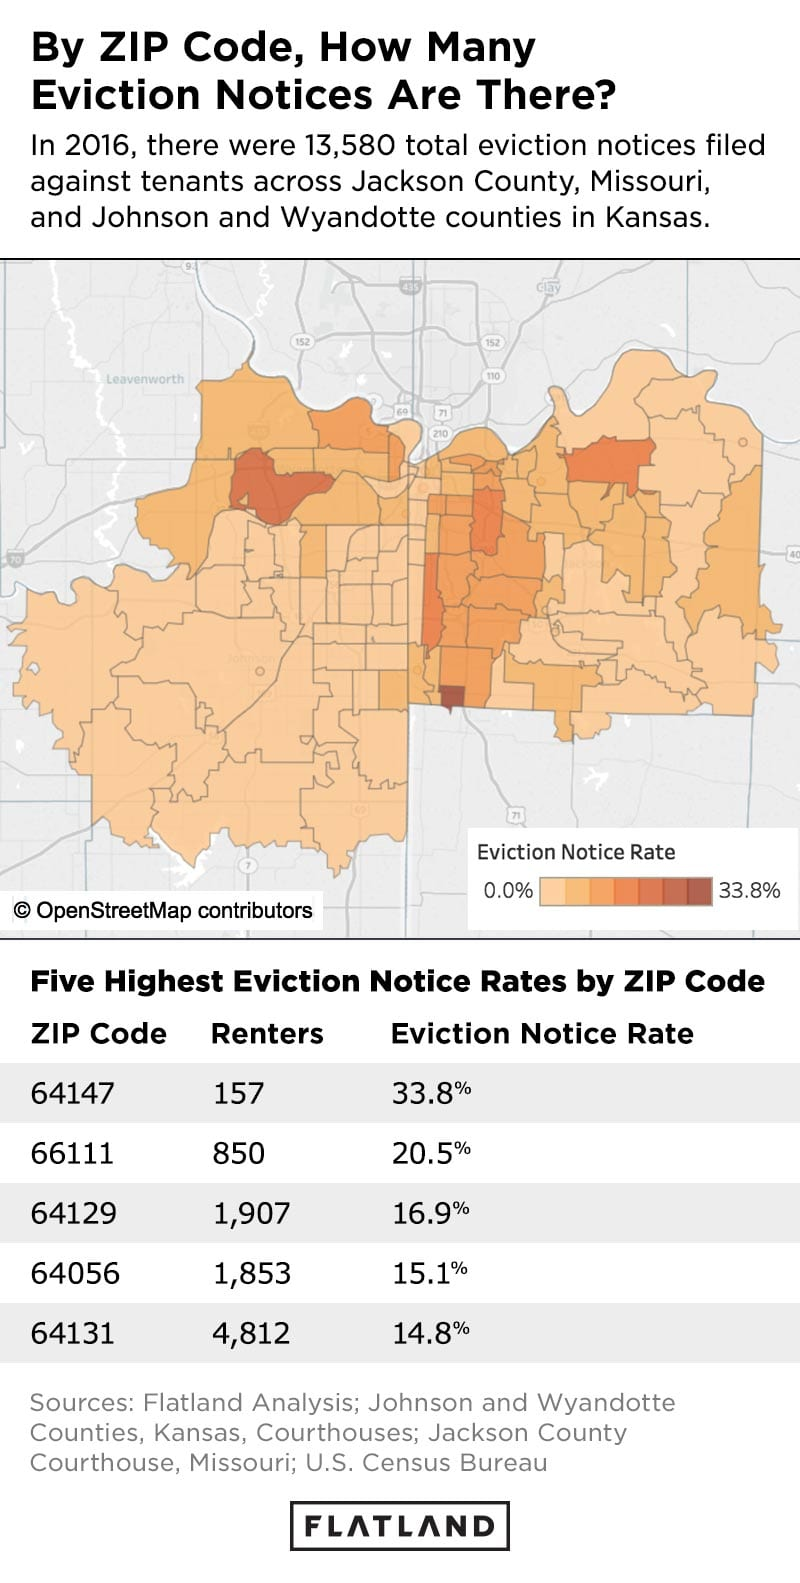 By ZIP Code, How Many Eviction Notices Are There? In 2016, there were 13,580 total evictions filed against tenants across Jackson County, Missouri, and Johnson and Wyandotte counties in Kansas.